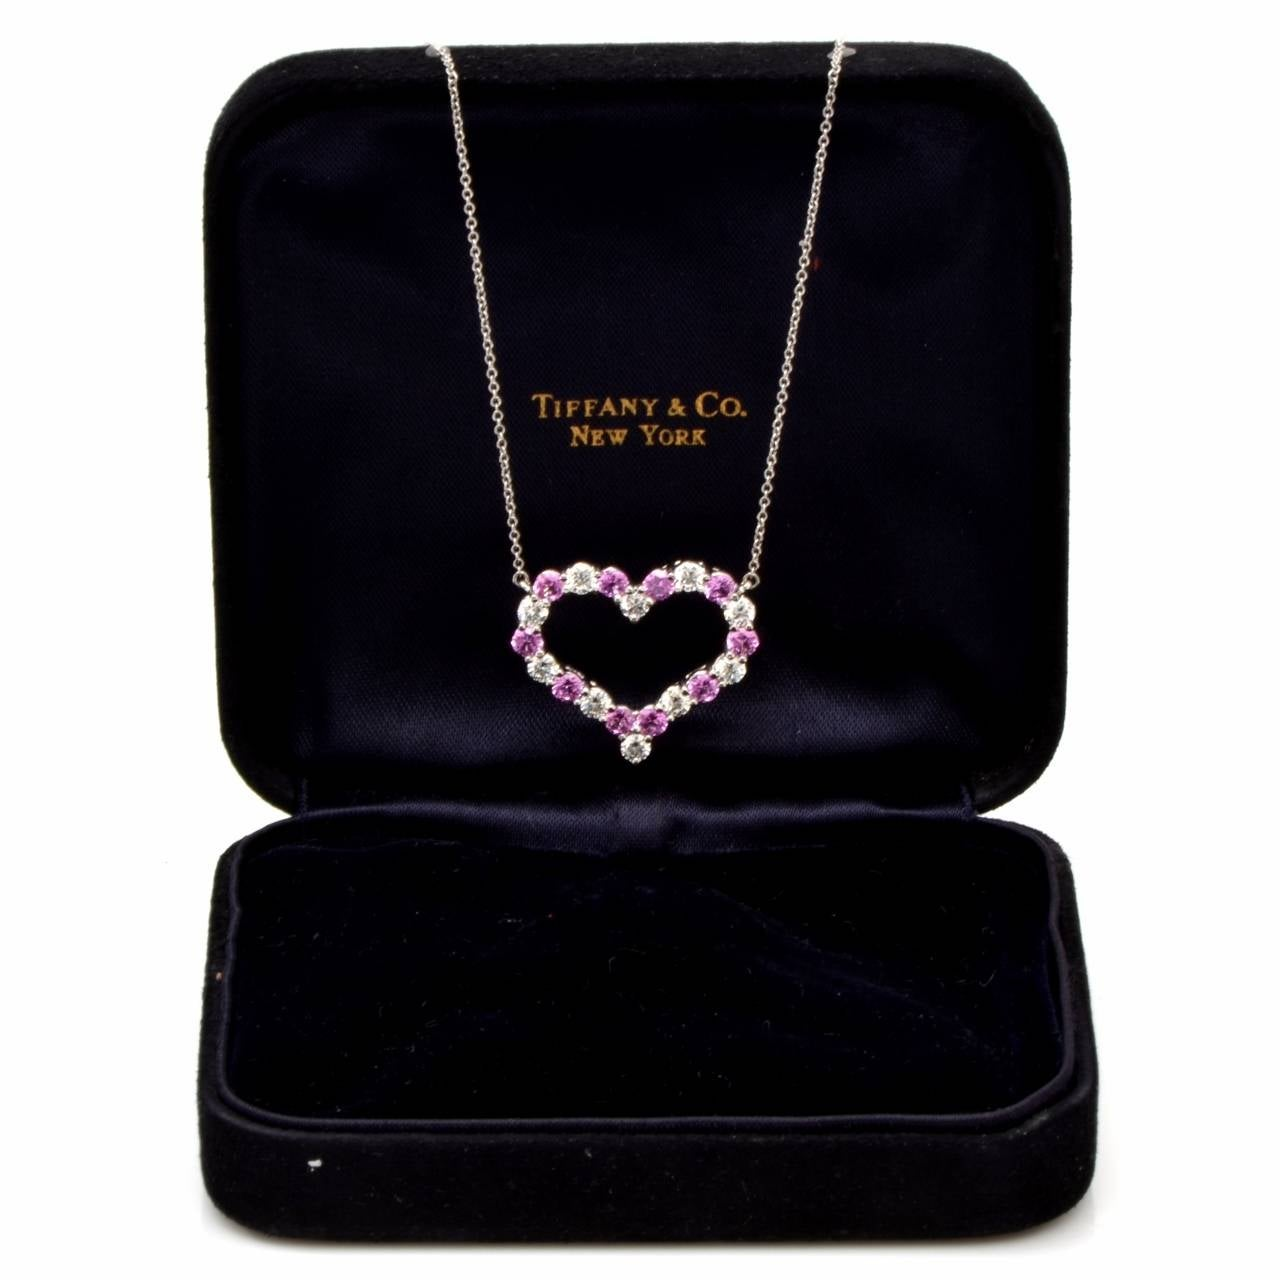 Tiffany and co diamond pink sapphire heart pendant platinum tiffany and co diamond pink sapphire heart pendant platinum necklace at 1stdibs aloadofball Image collections